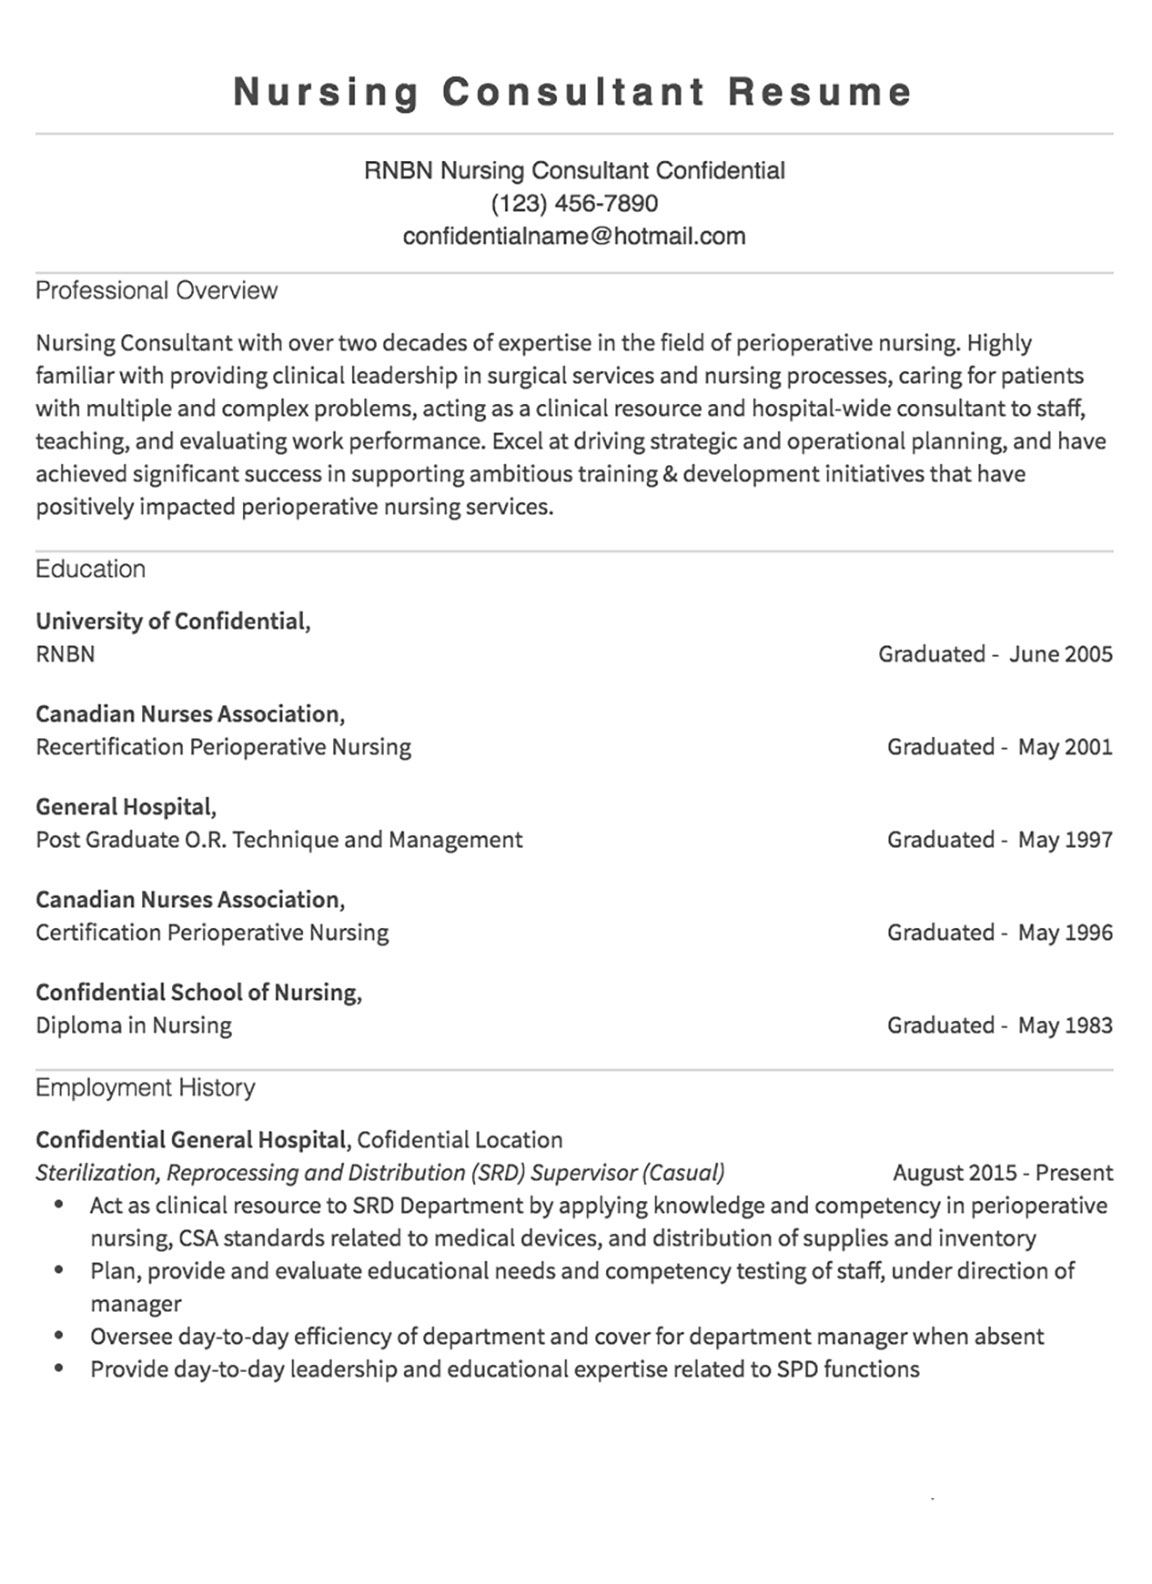 Resume Samples 125 Free Example Resumes Amp Formats